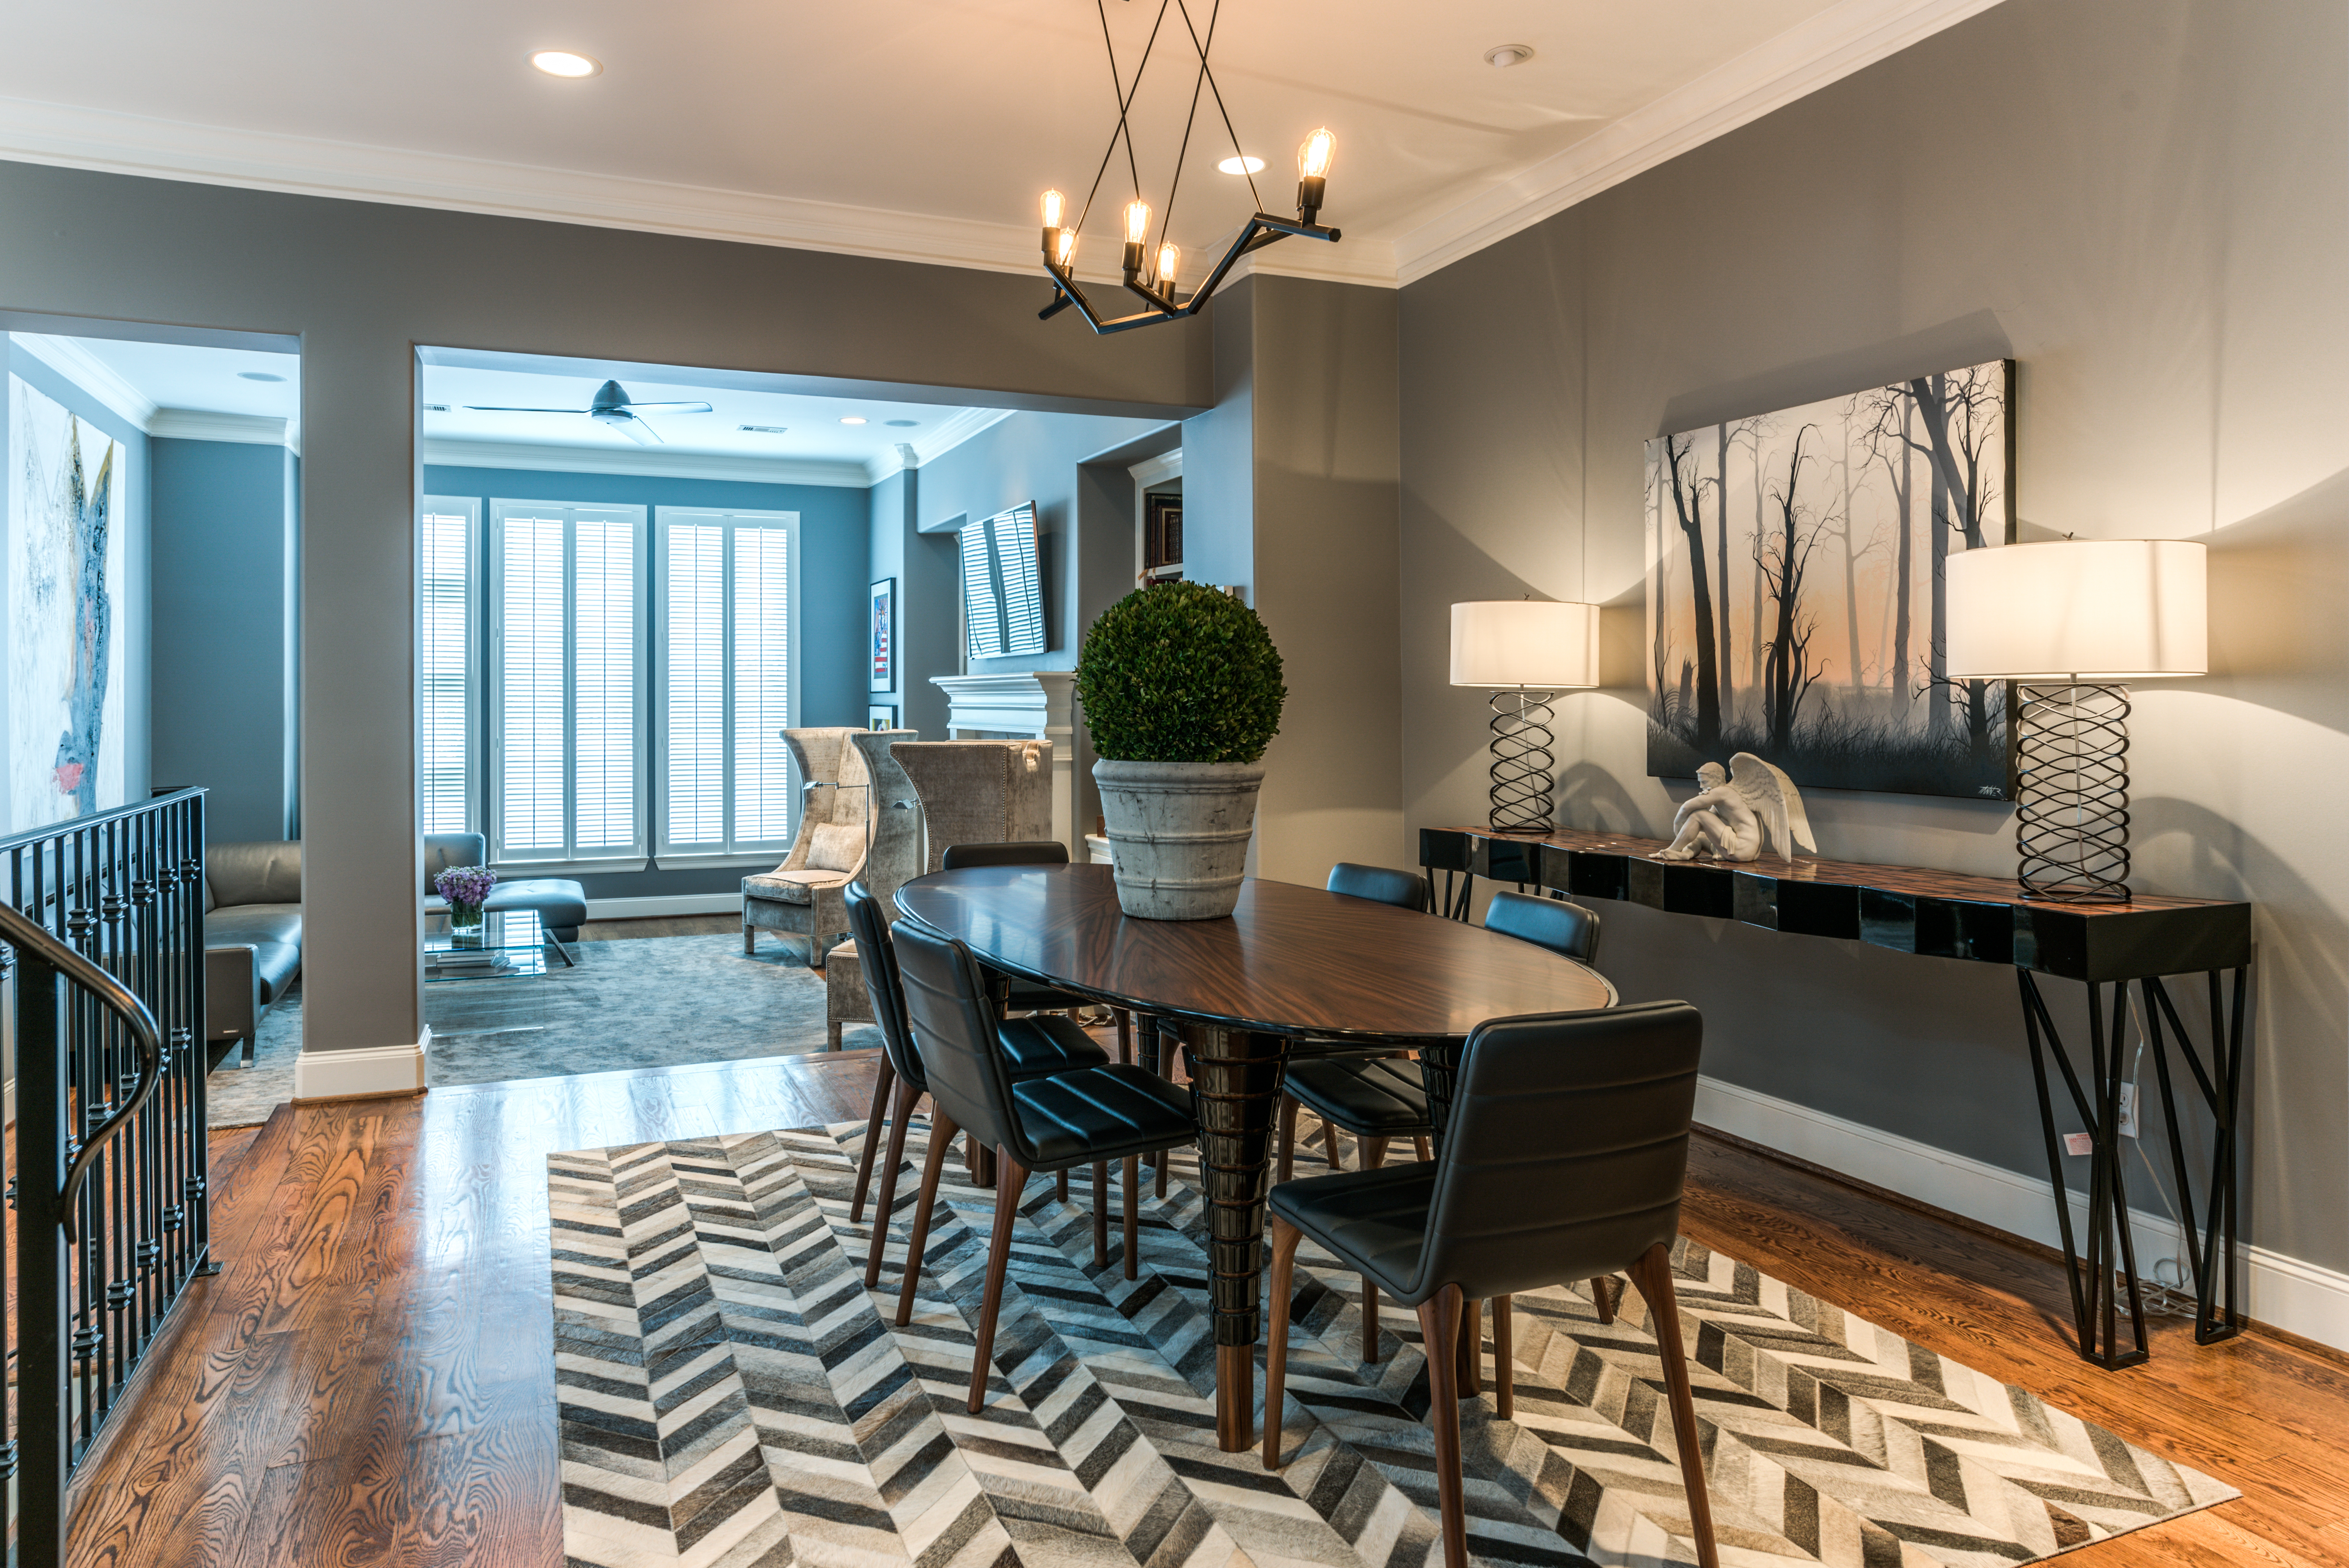 Inspiring Interior Project with Malabar | Artistic Furniture by ...